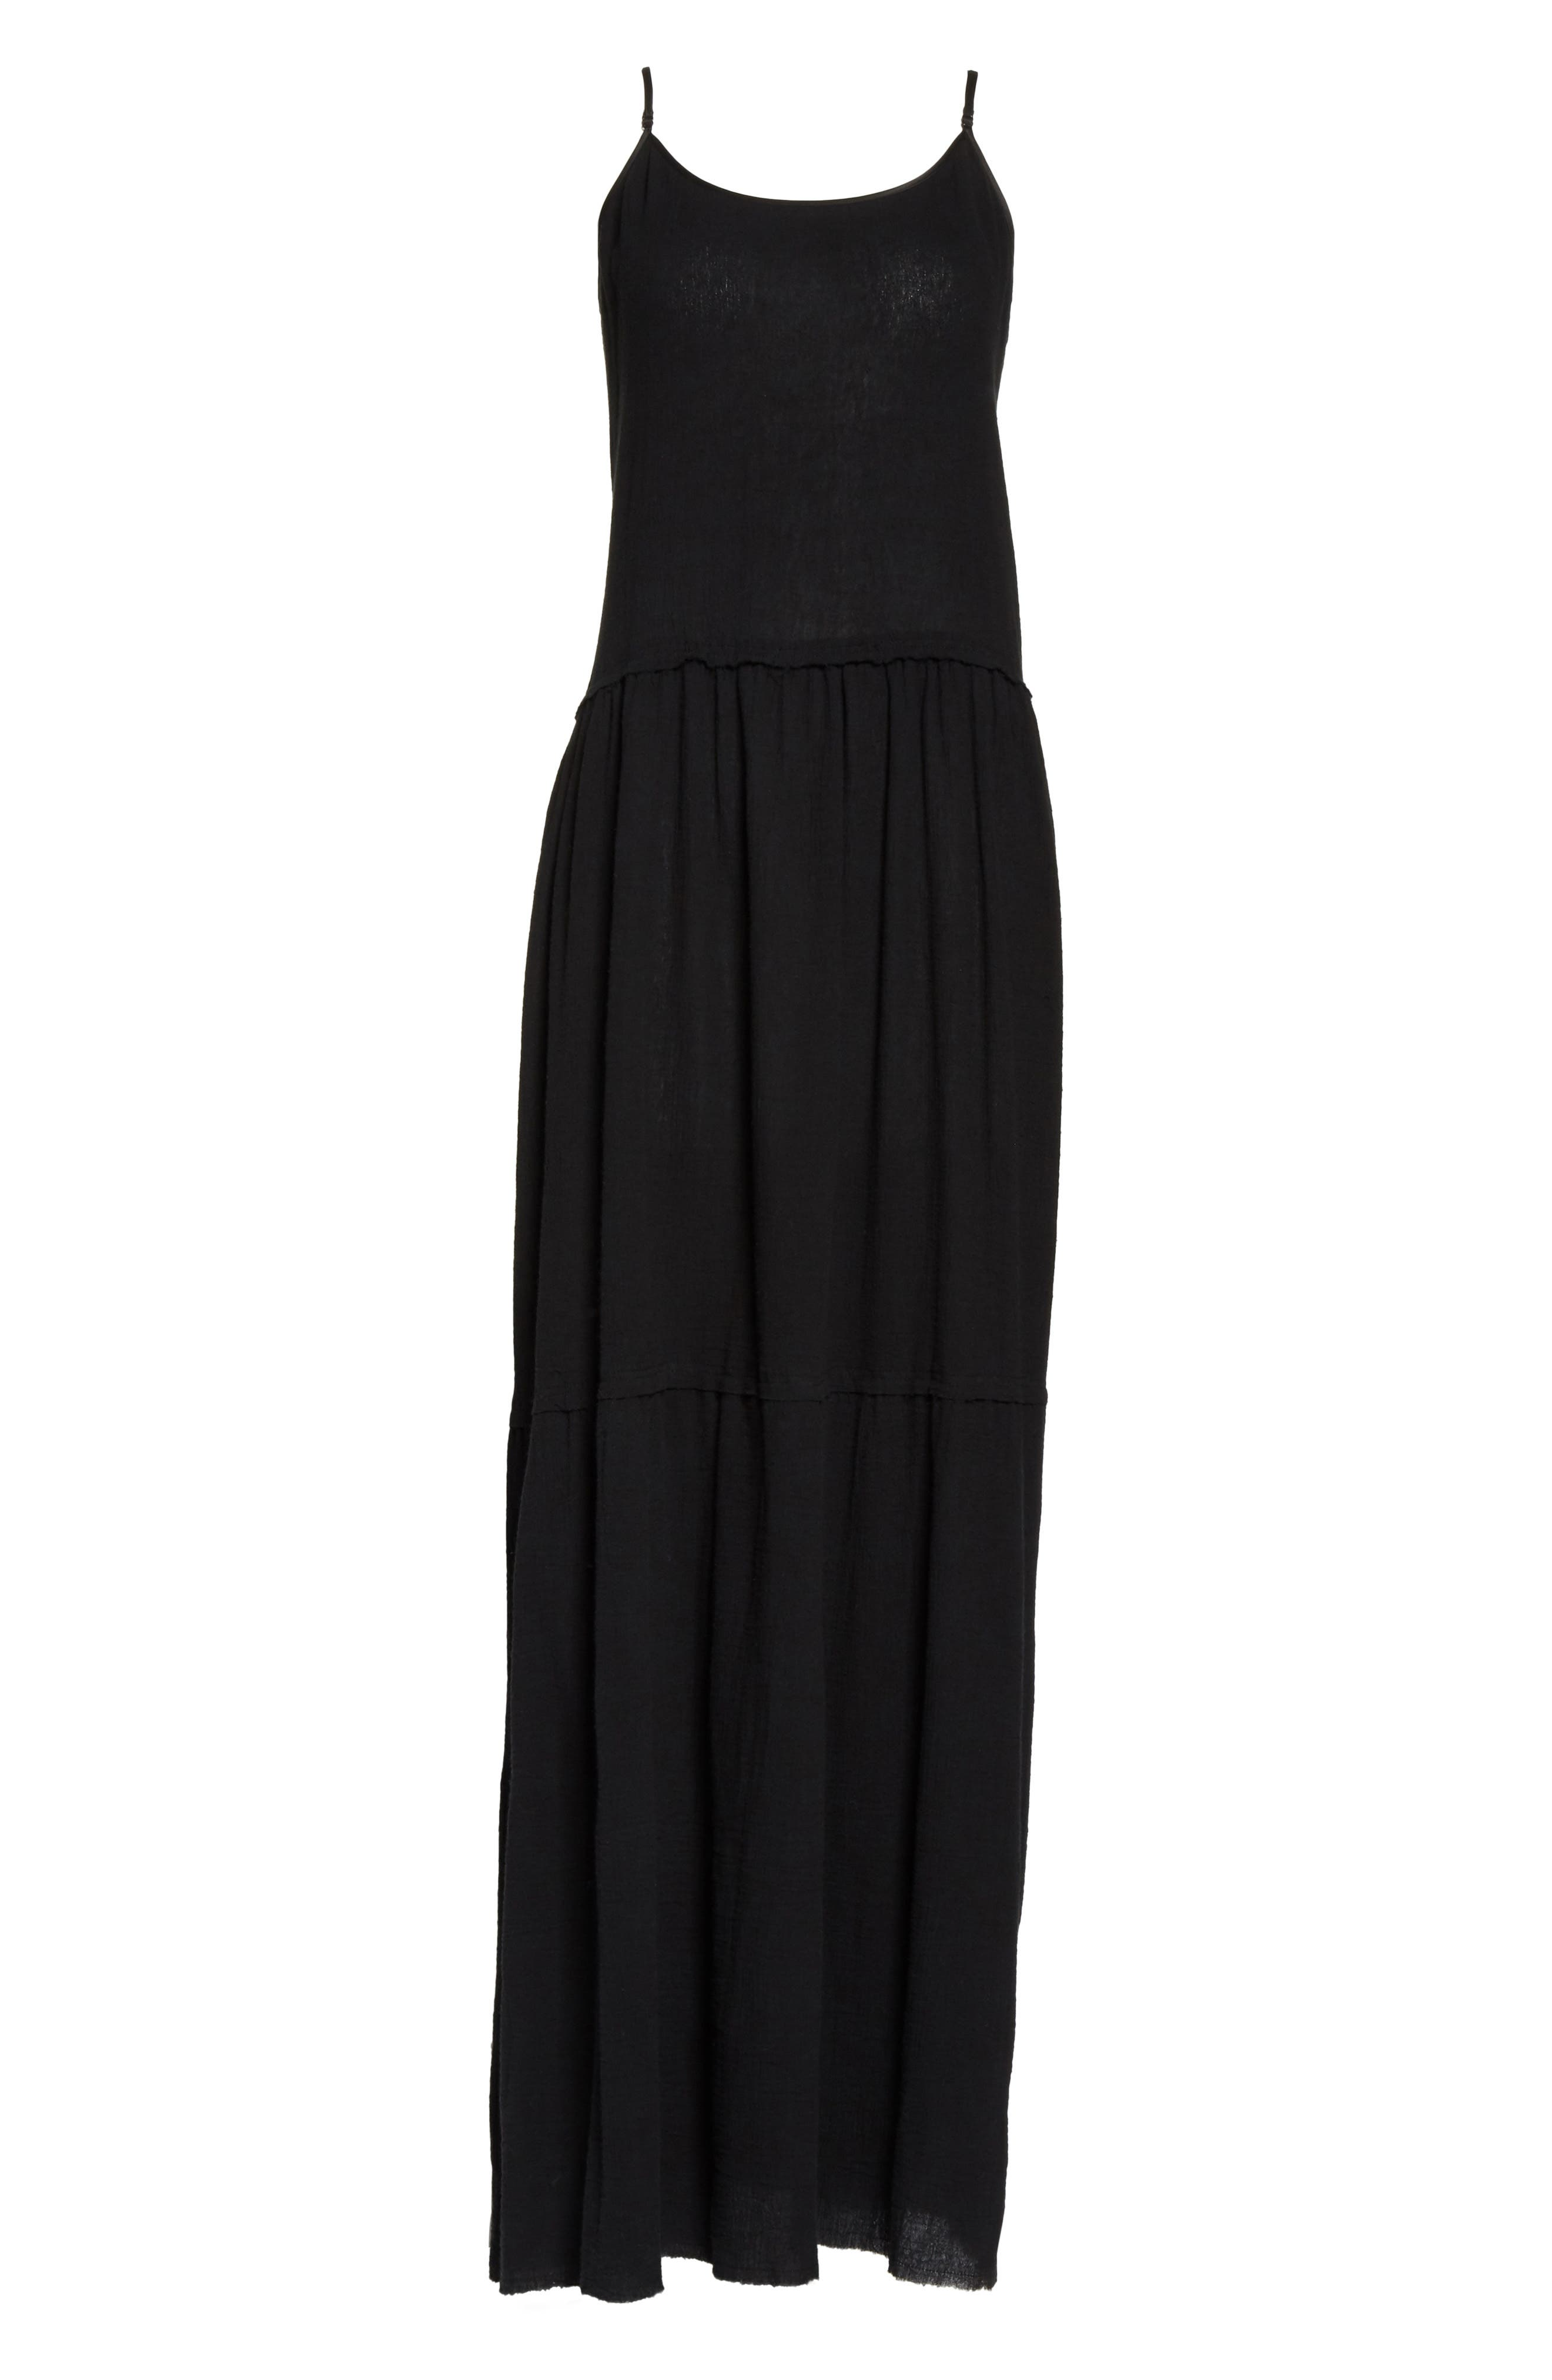 Tiered Maxi Dress,                             Alternate thumbnail 6, color,                             001